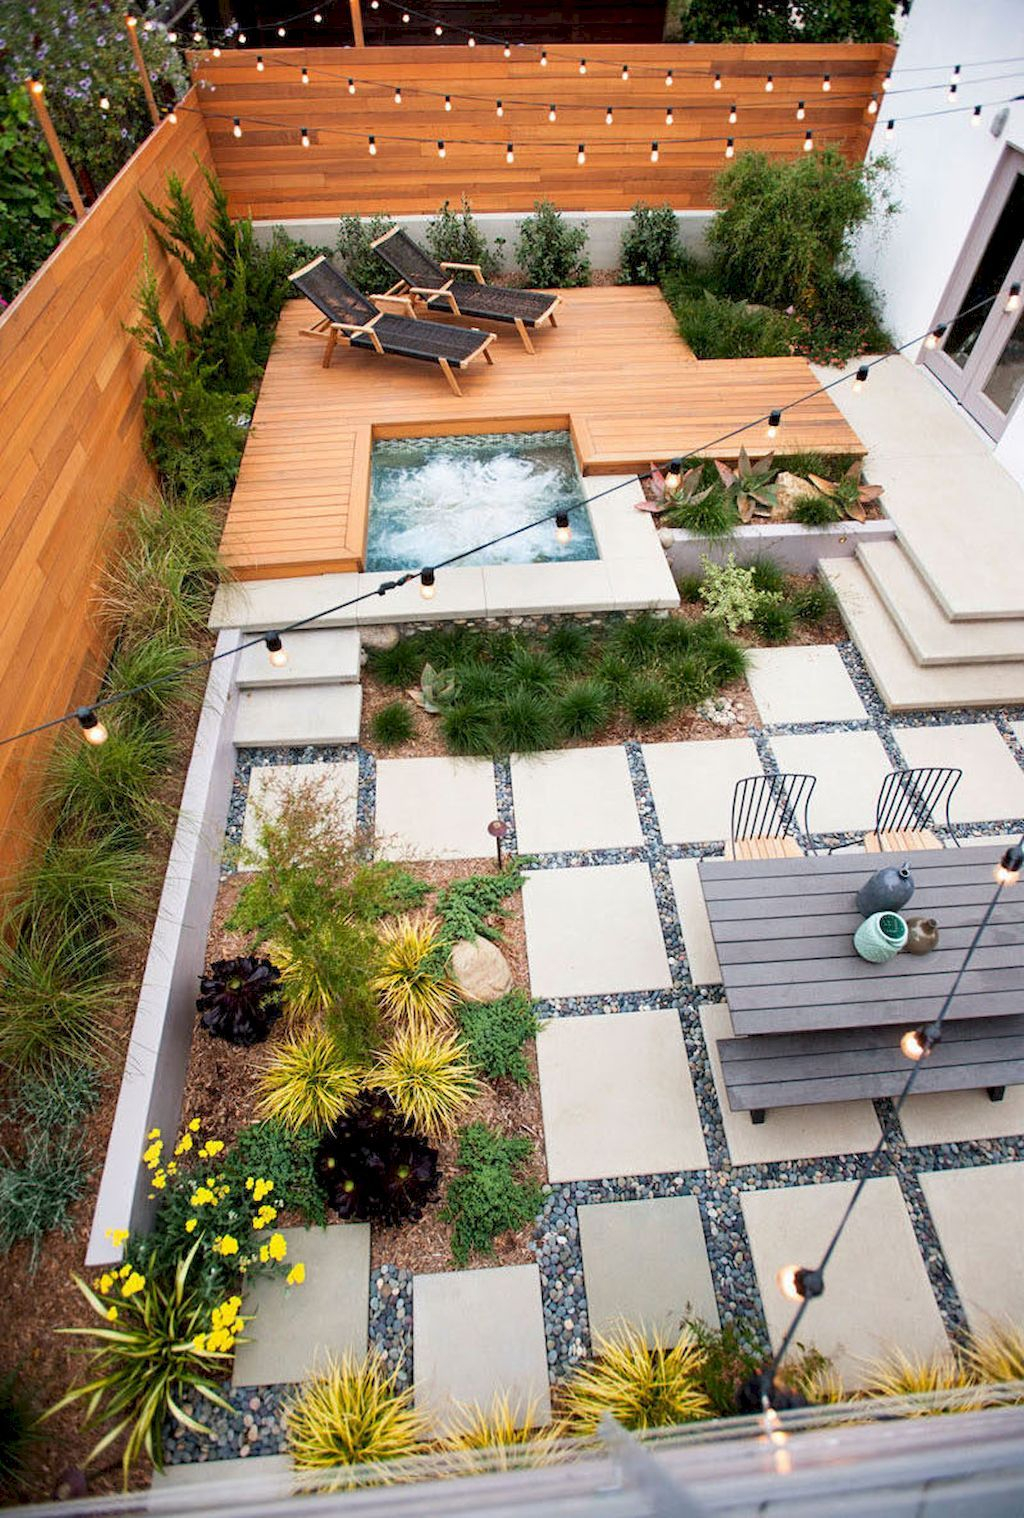 80 Small Backyard Landscaping Ideas On A Budget For The in How To Landscape A Backyard On A Budget